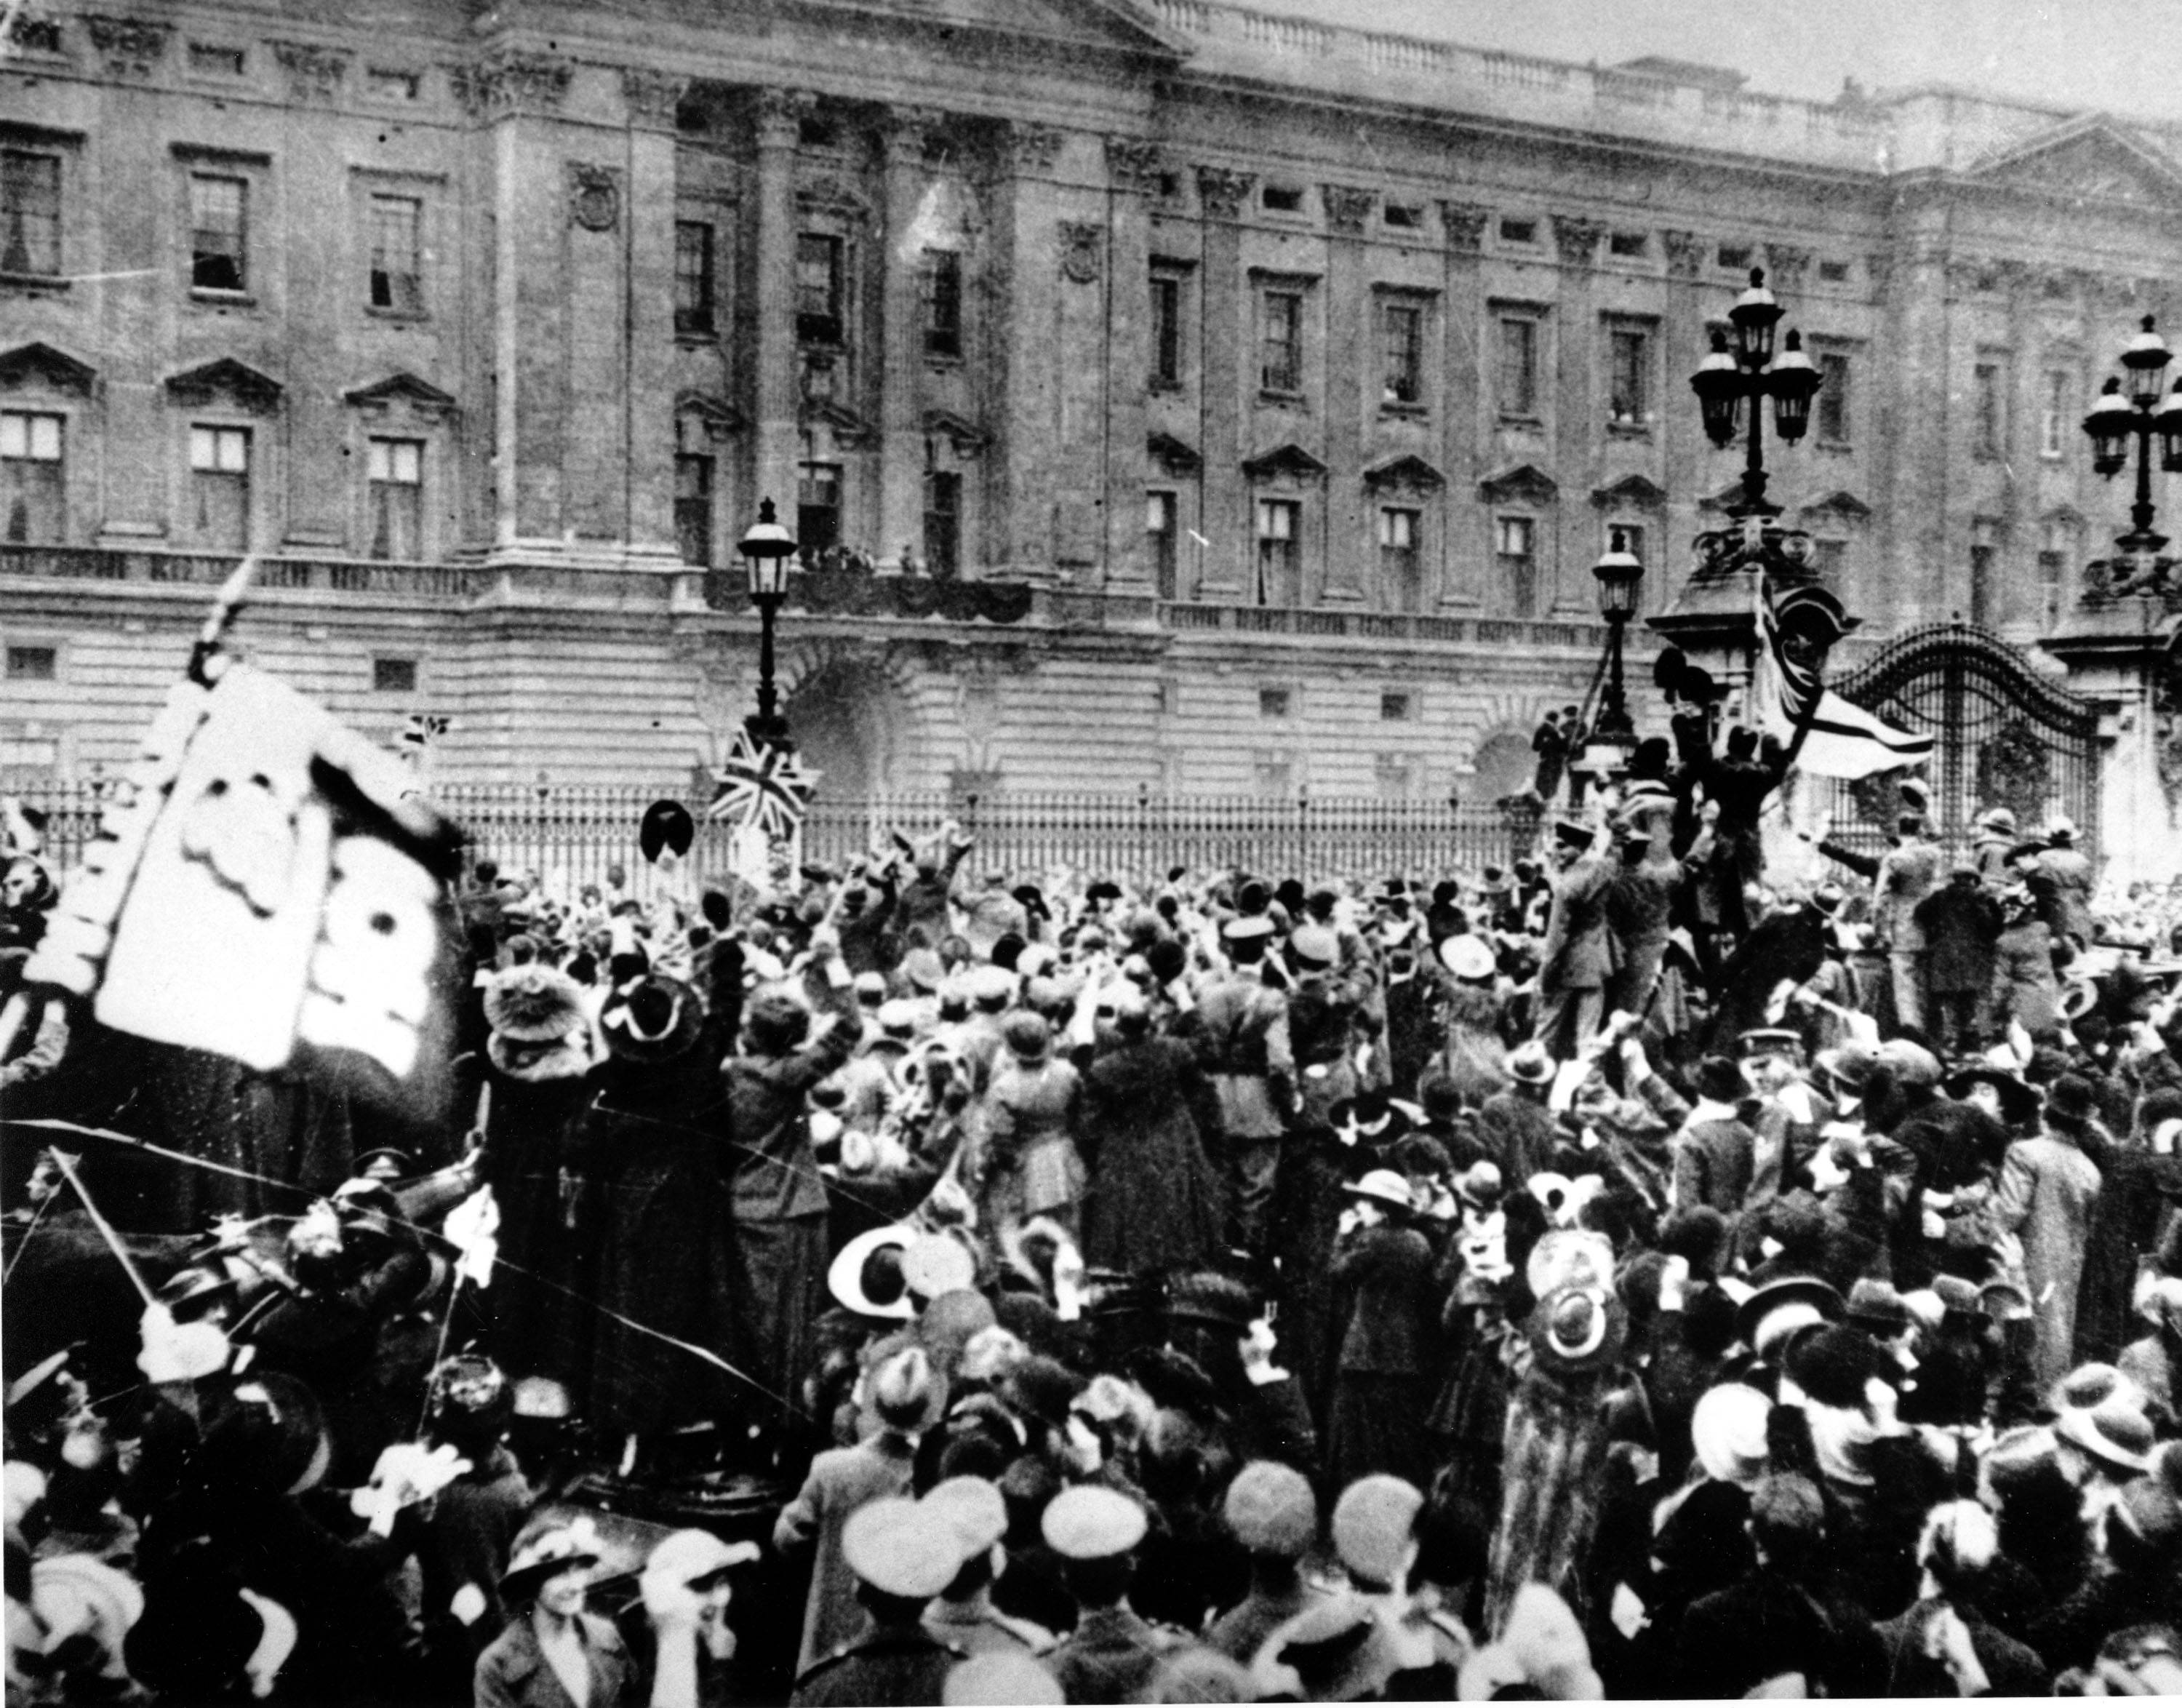 98 OF 100: In this Nov. 11, 1918, file photo, a group of people gather in front of Buckingham Palace in London, England, to celebrate the signing of the Armistice that ended the fighting of World War I.